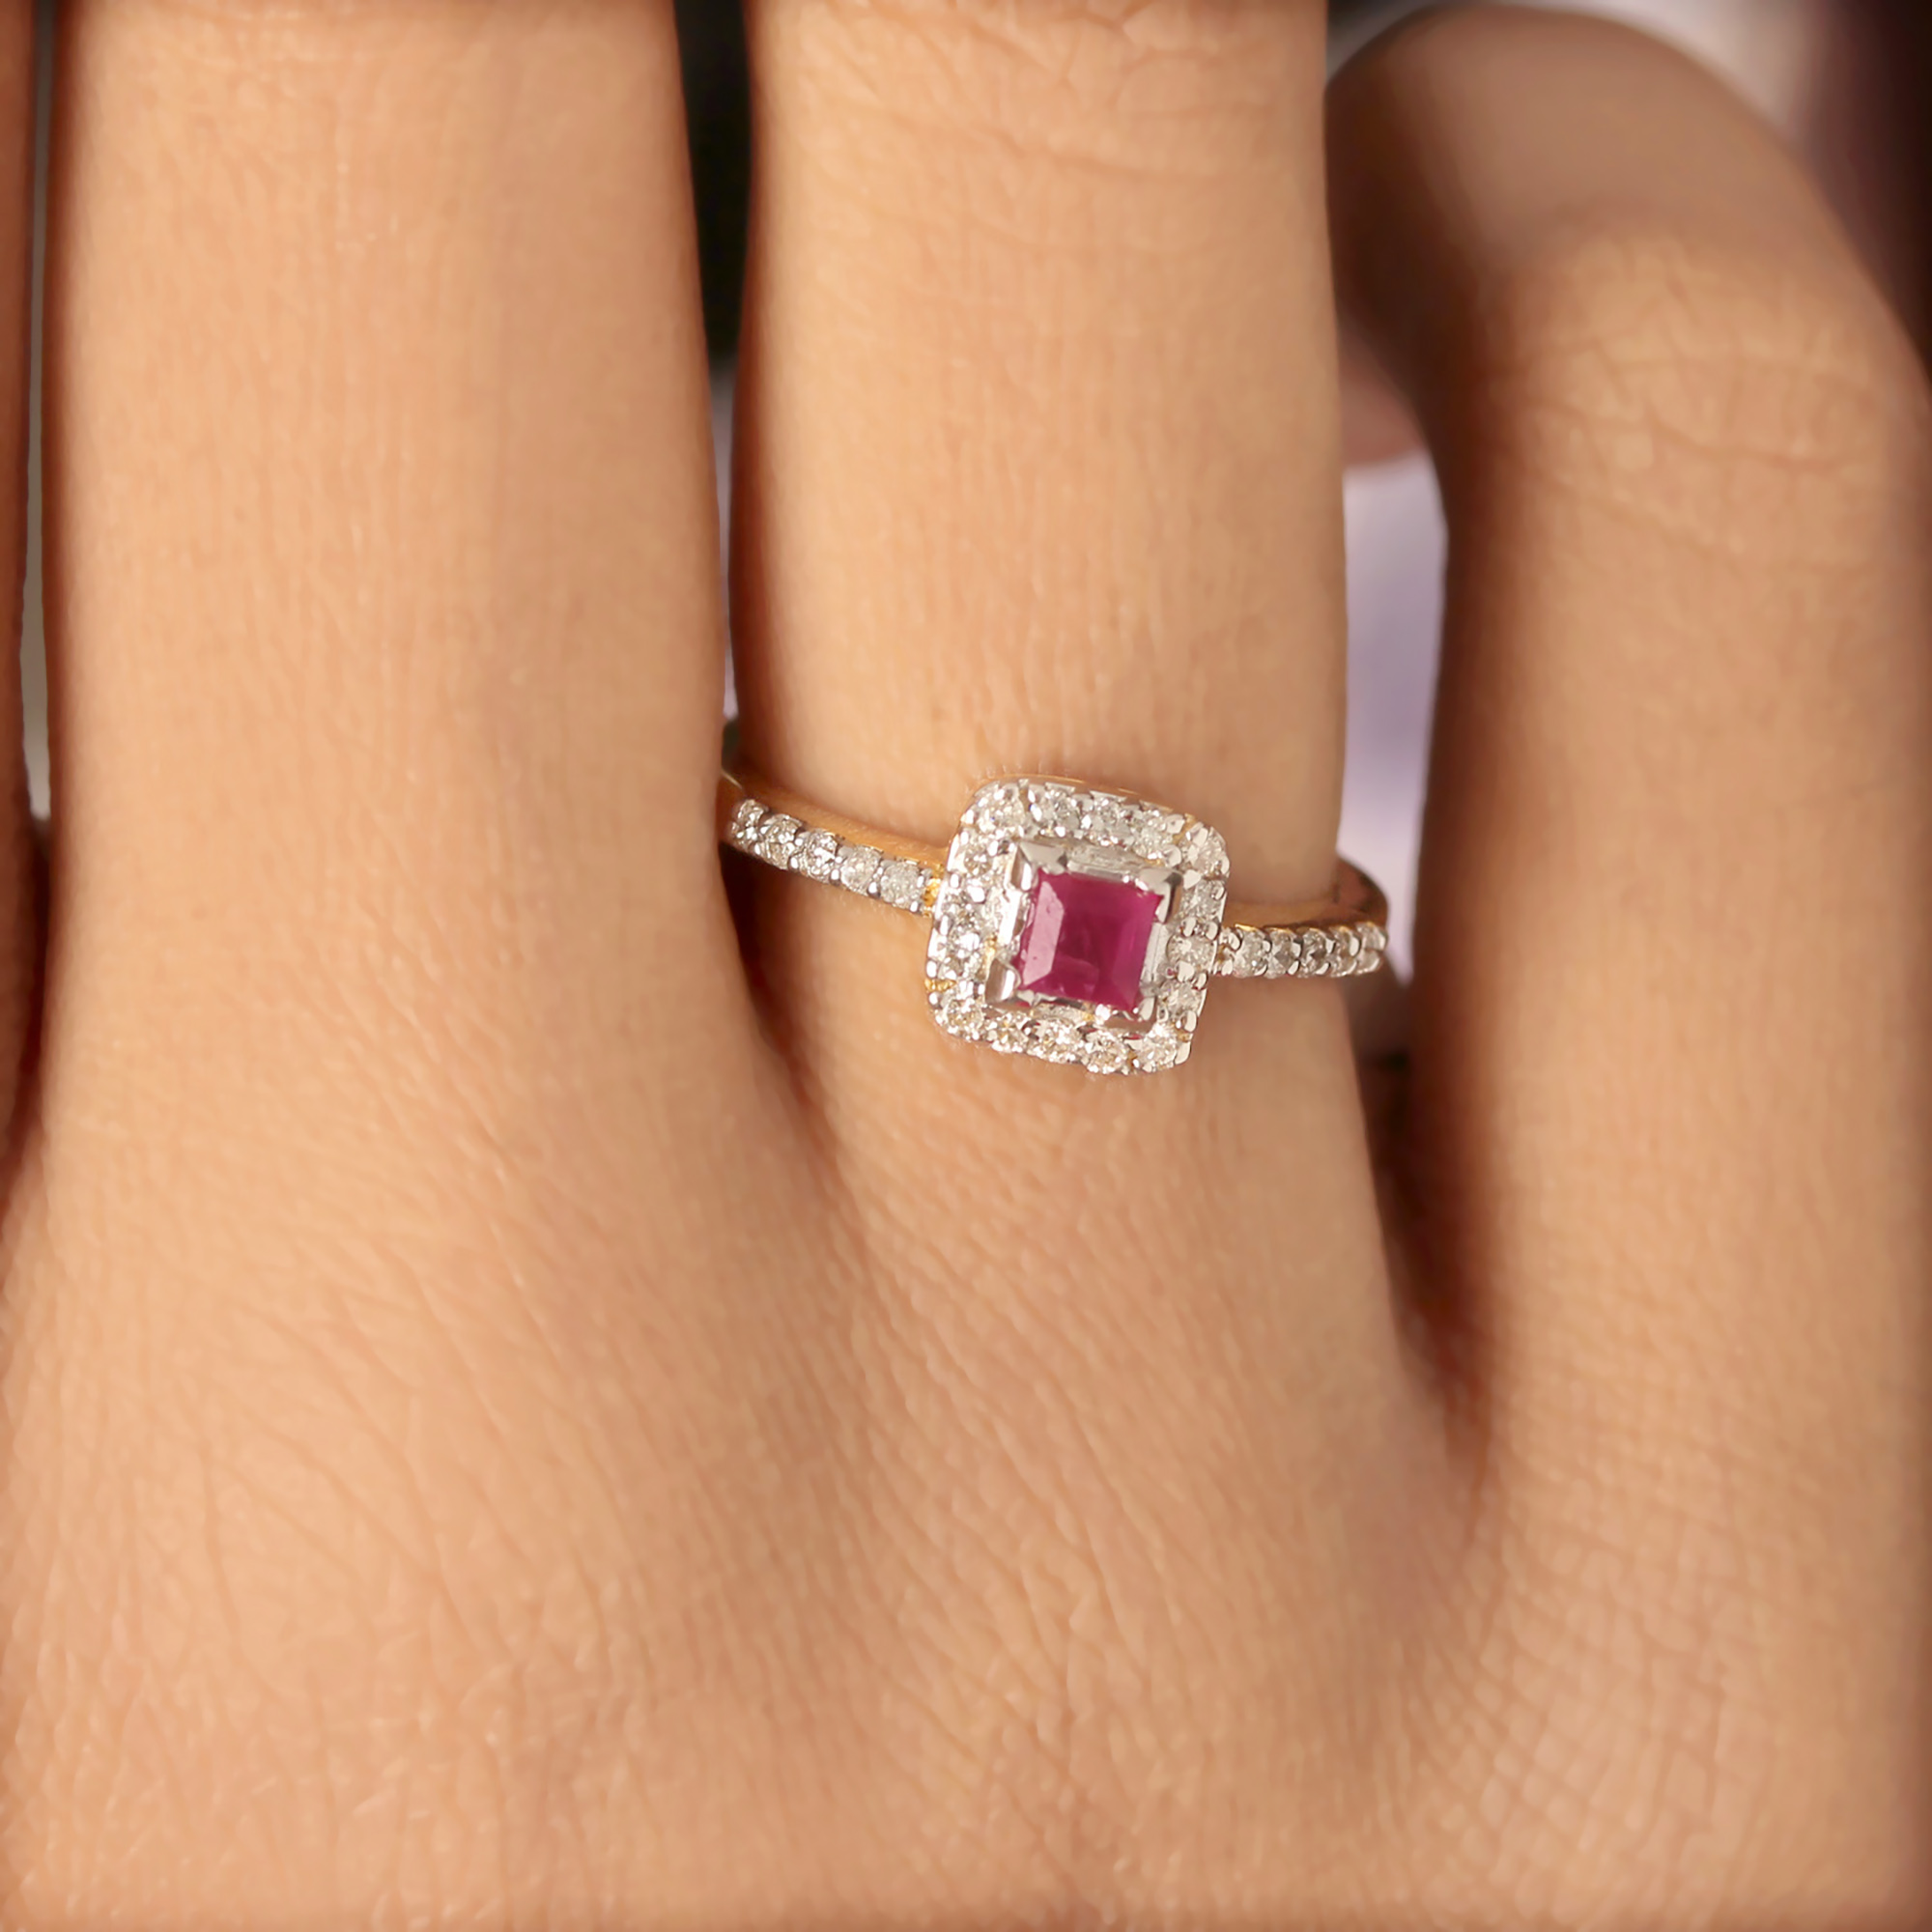 Solid Gold Ring With Diamond And Ruby